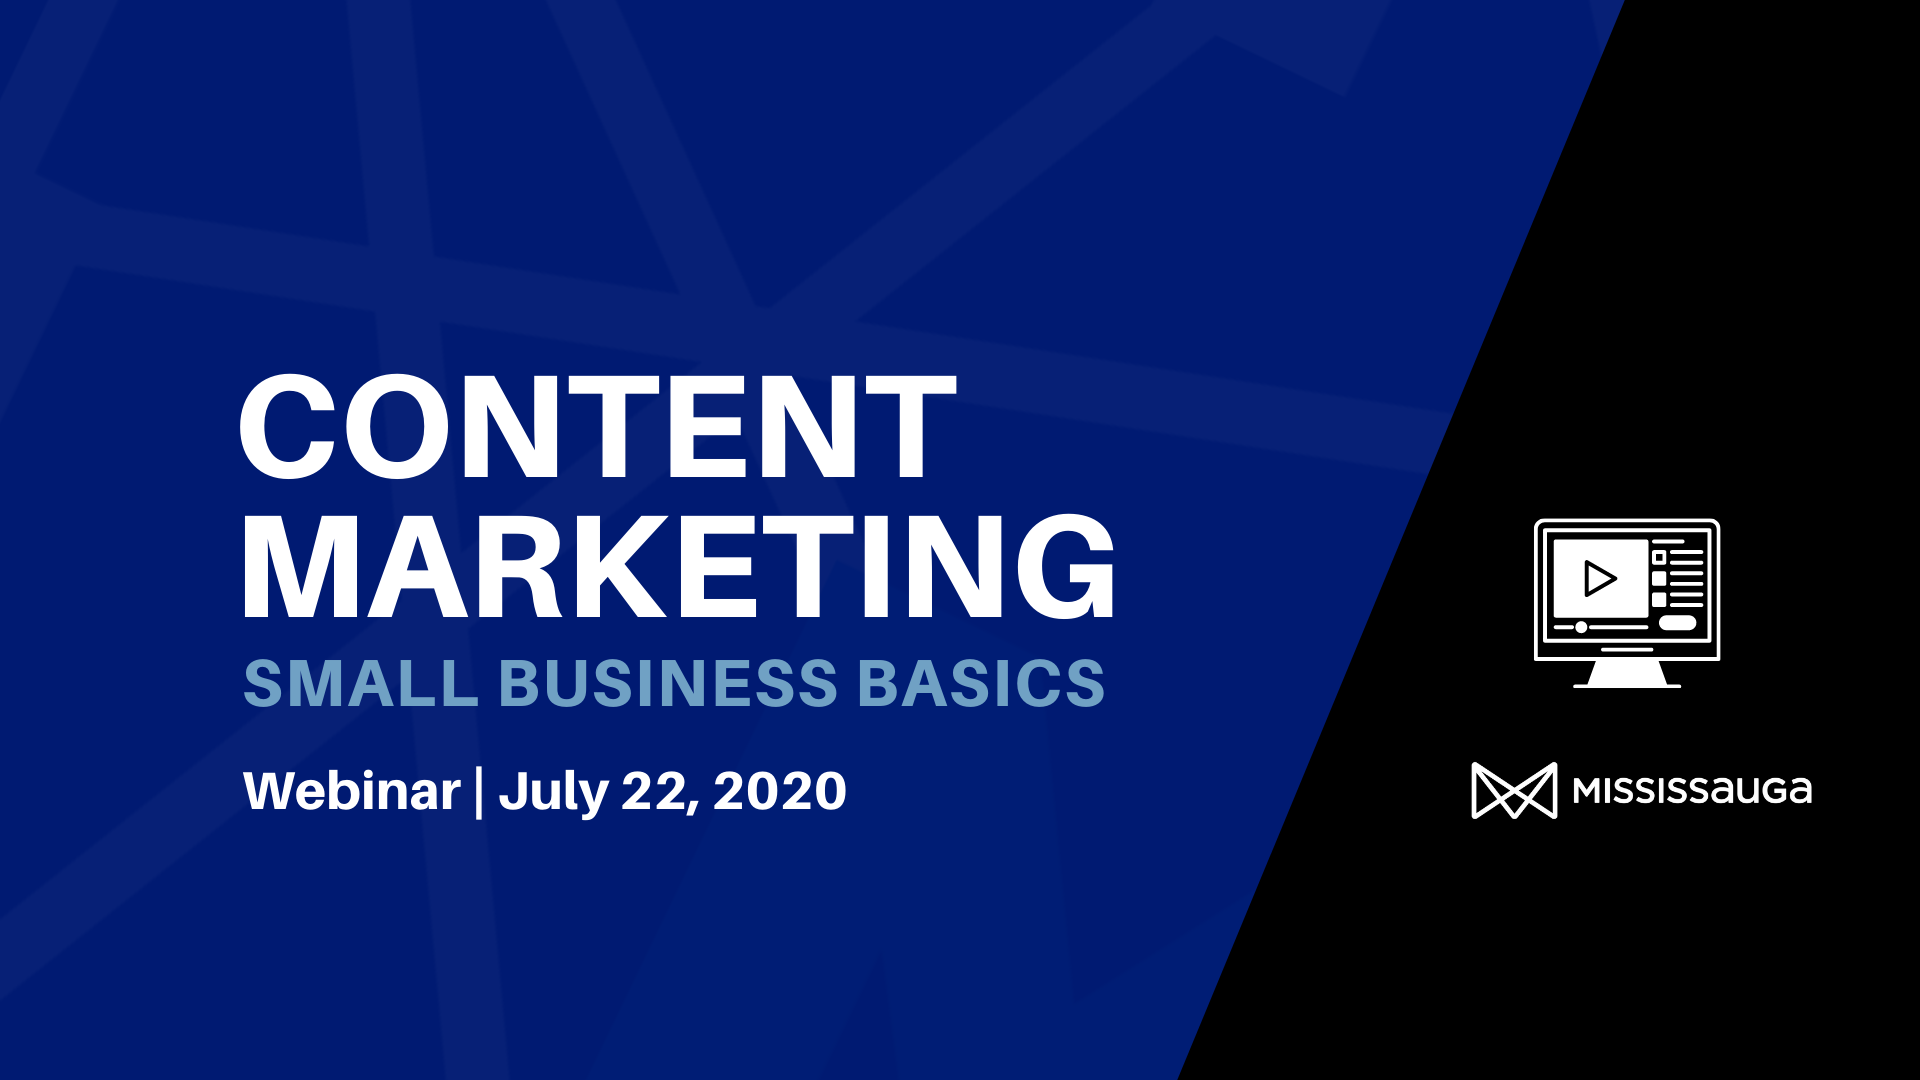 Content Marketing 101 – Webinar, Jul 22